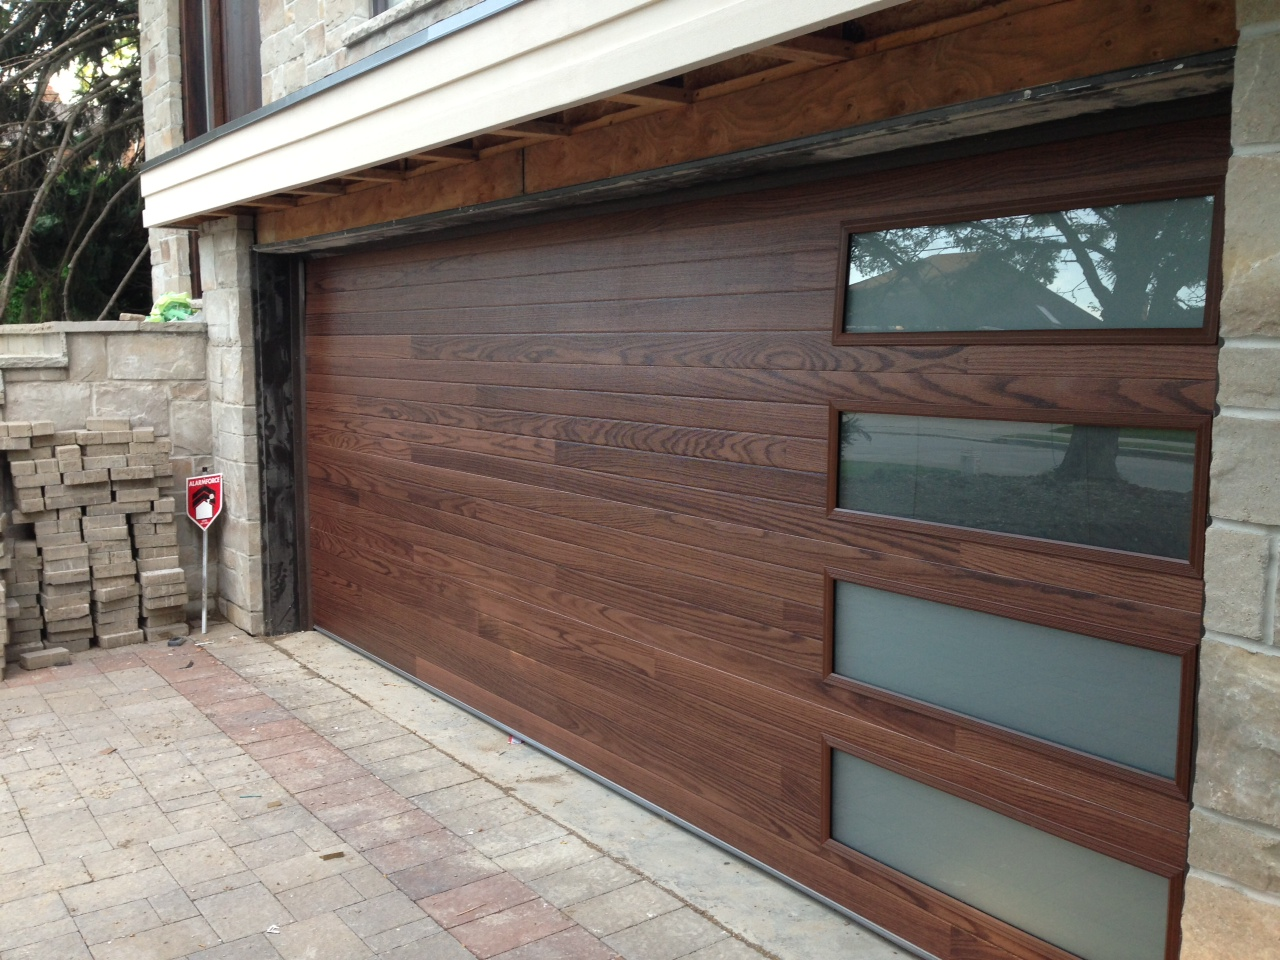 C h i mahogany accent planks door model 3216p with for Garage door finishes